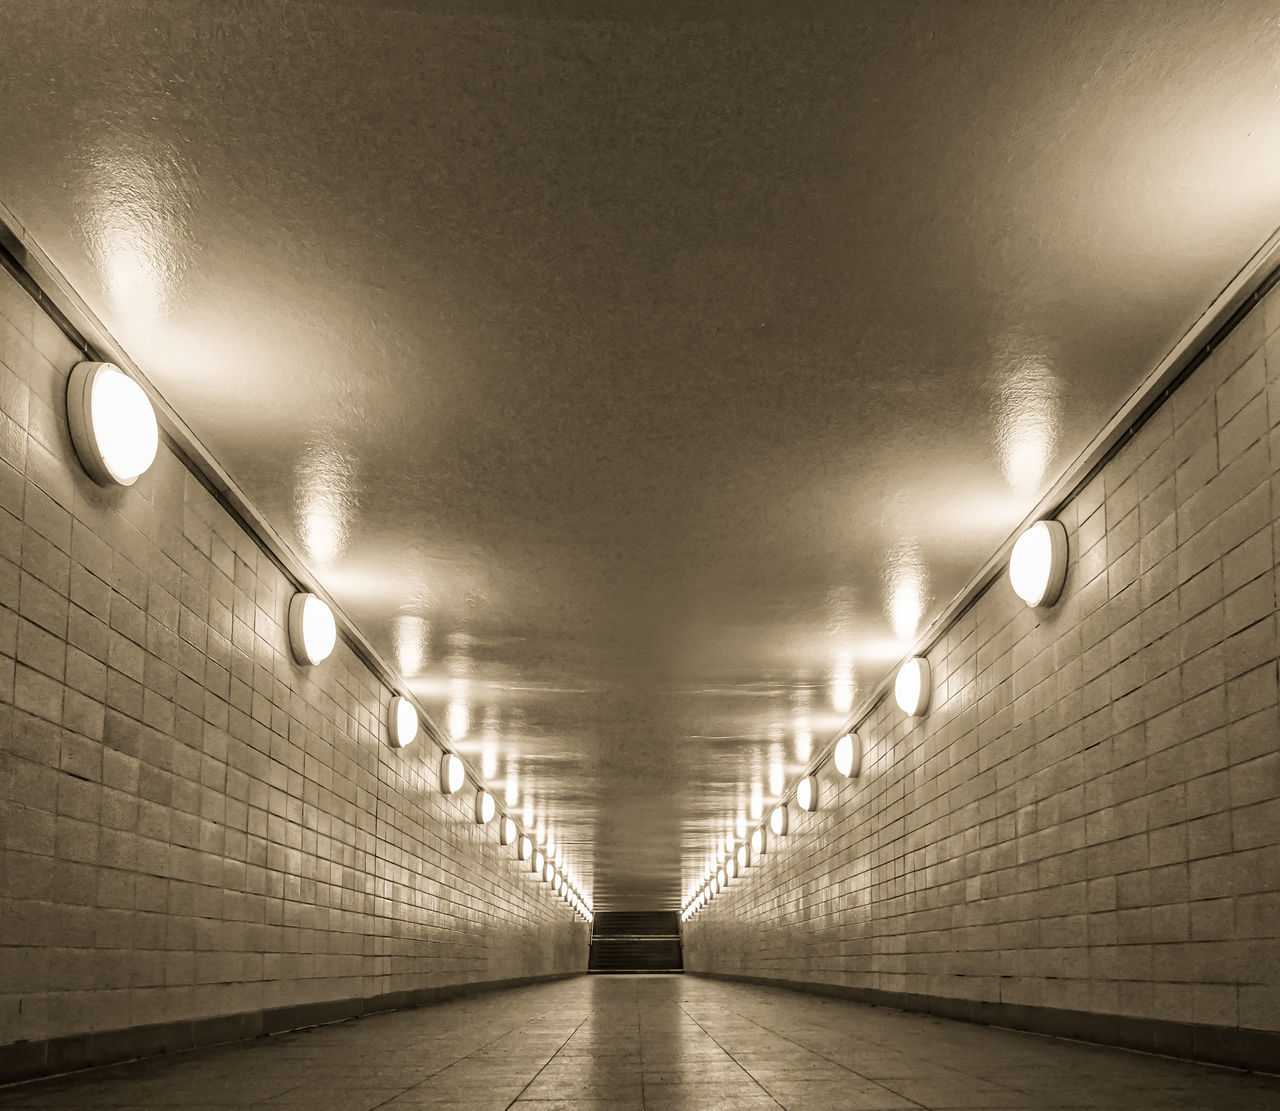 Architecture Ceiling Ceiling Light  Electric Light Empty Fußgängertunnel Illuminated Indoors  Light Lighting Equipment Lit No People No People, Pedestrian Tunnel Pedestrian Walkway Subway The Way Forward Tunnel Underpass